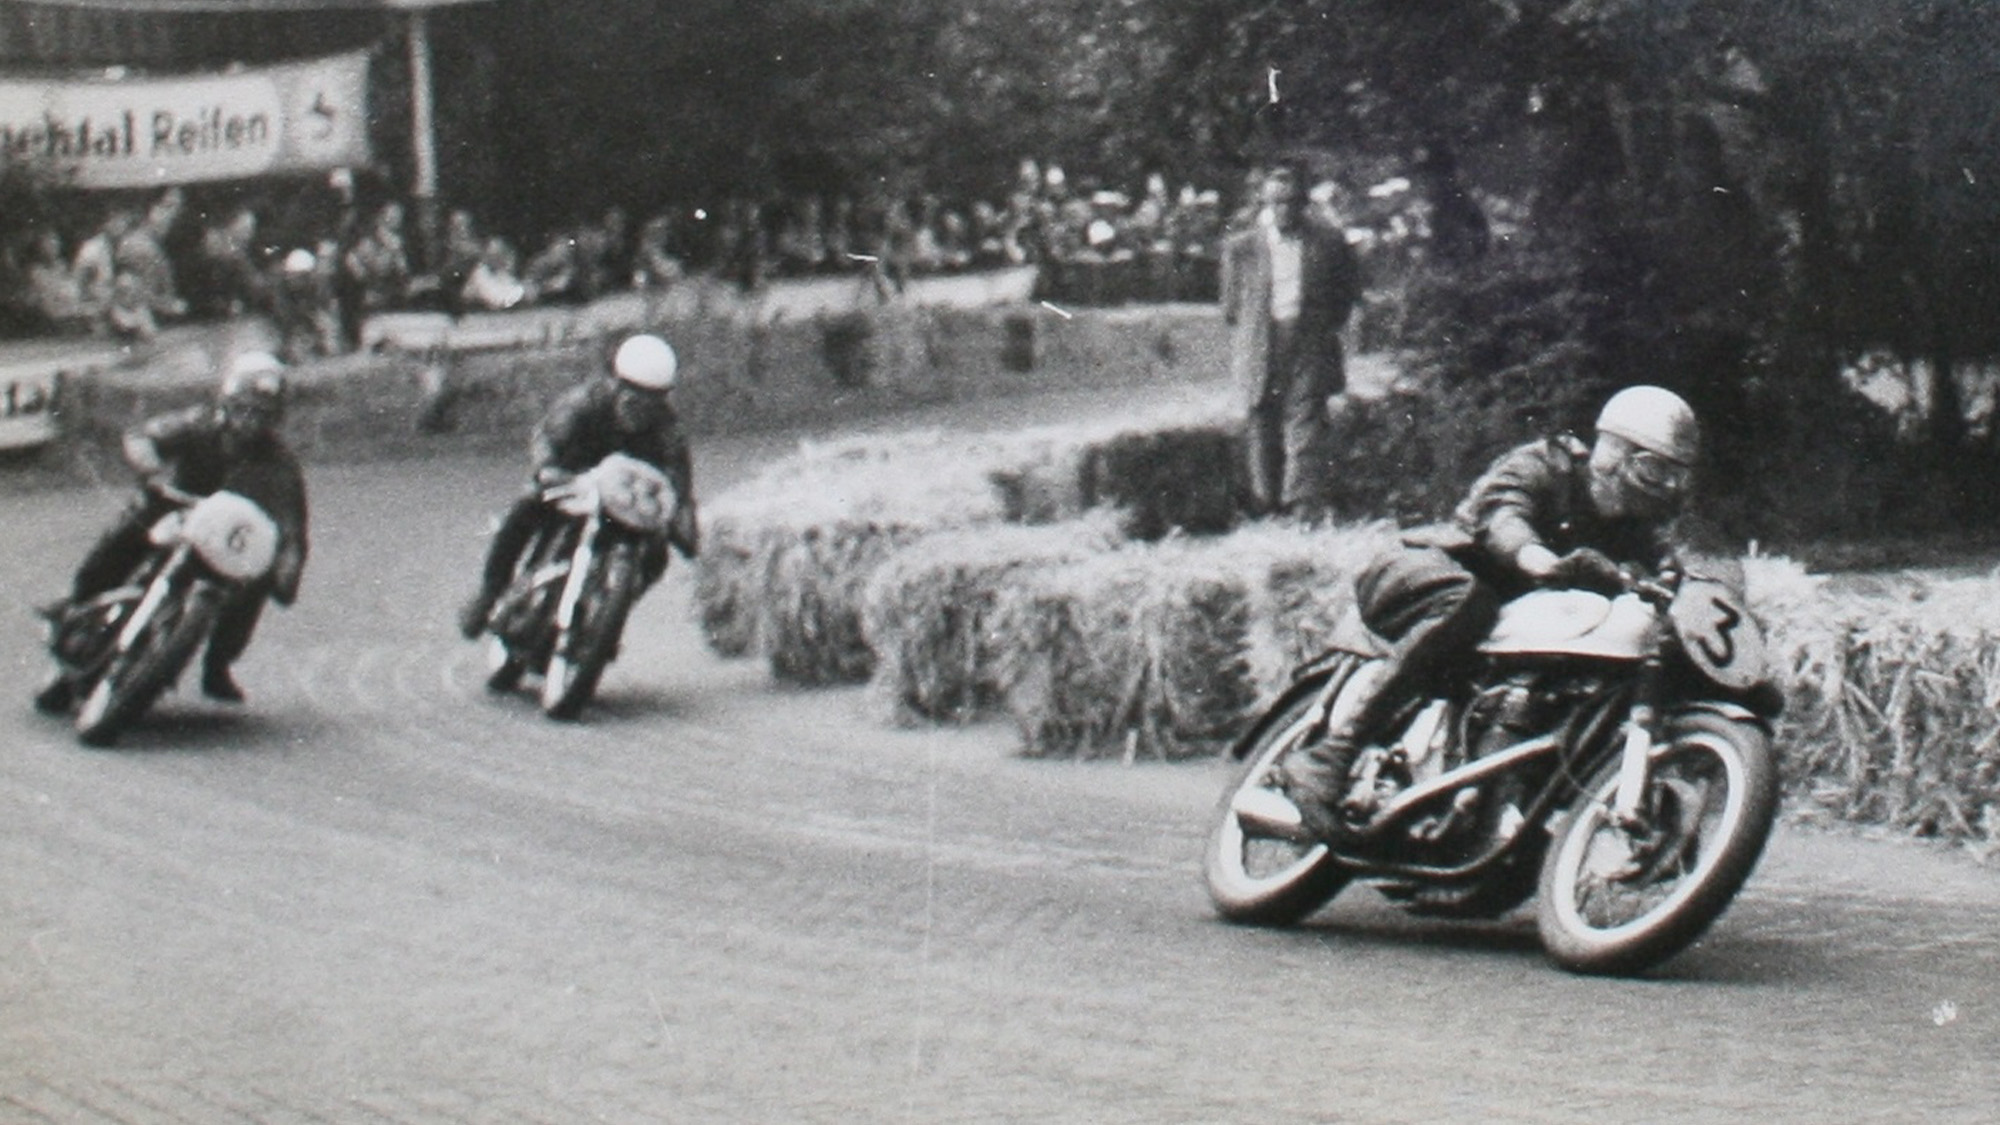 Jack Ahearn on Norton Manx in the 1960s